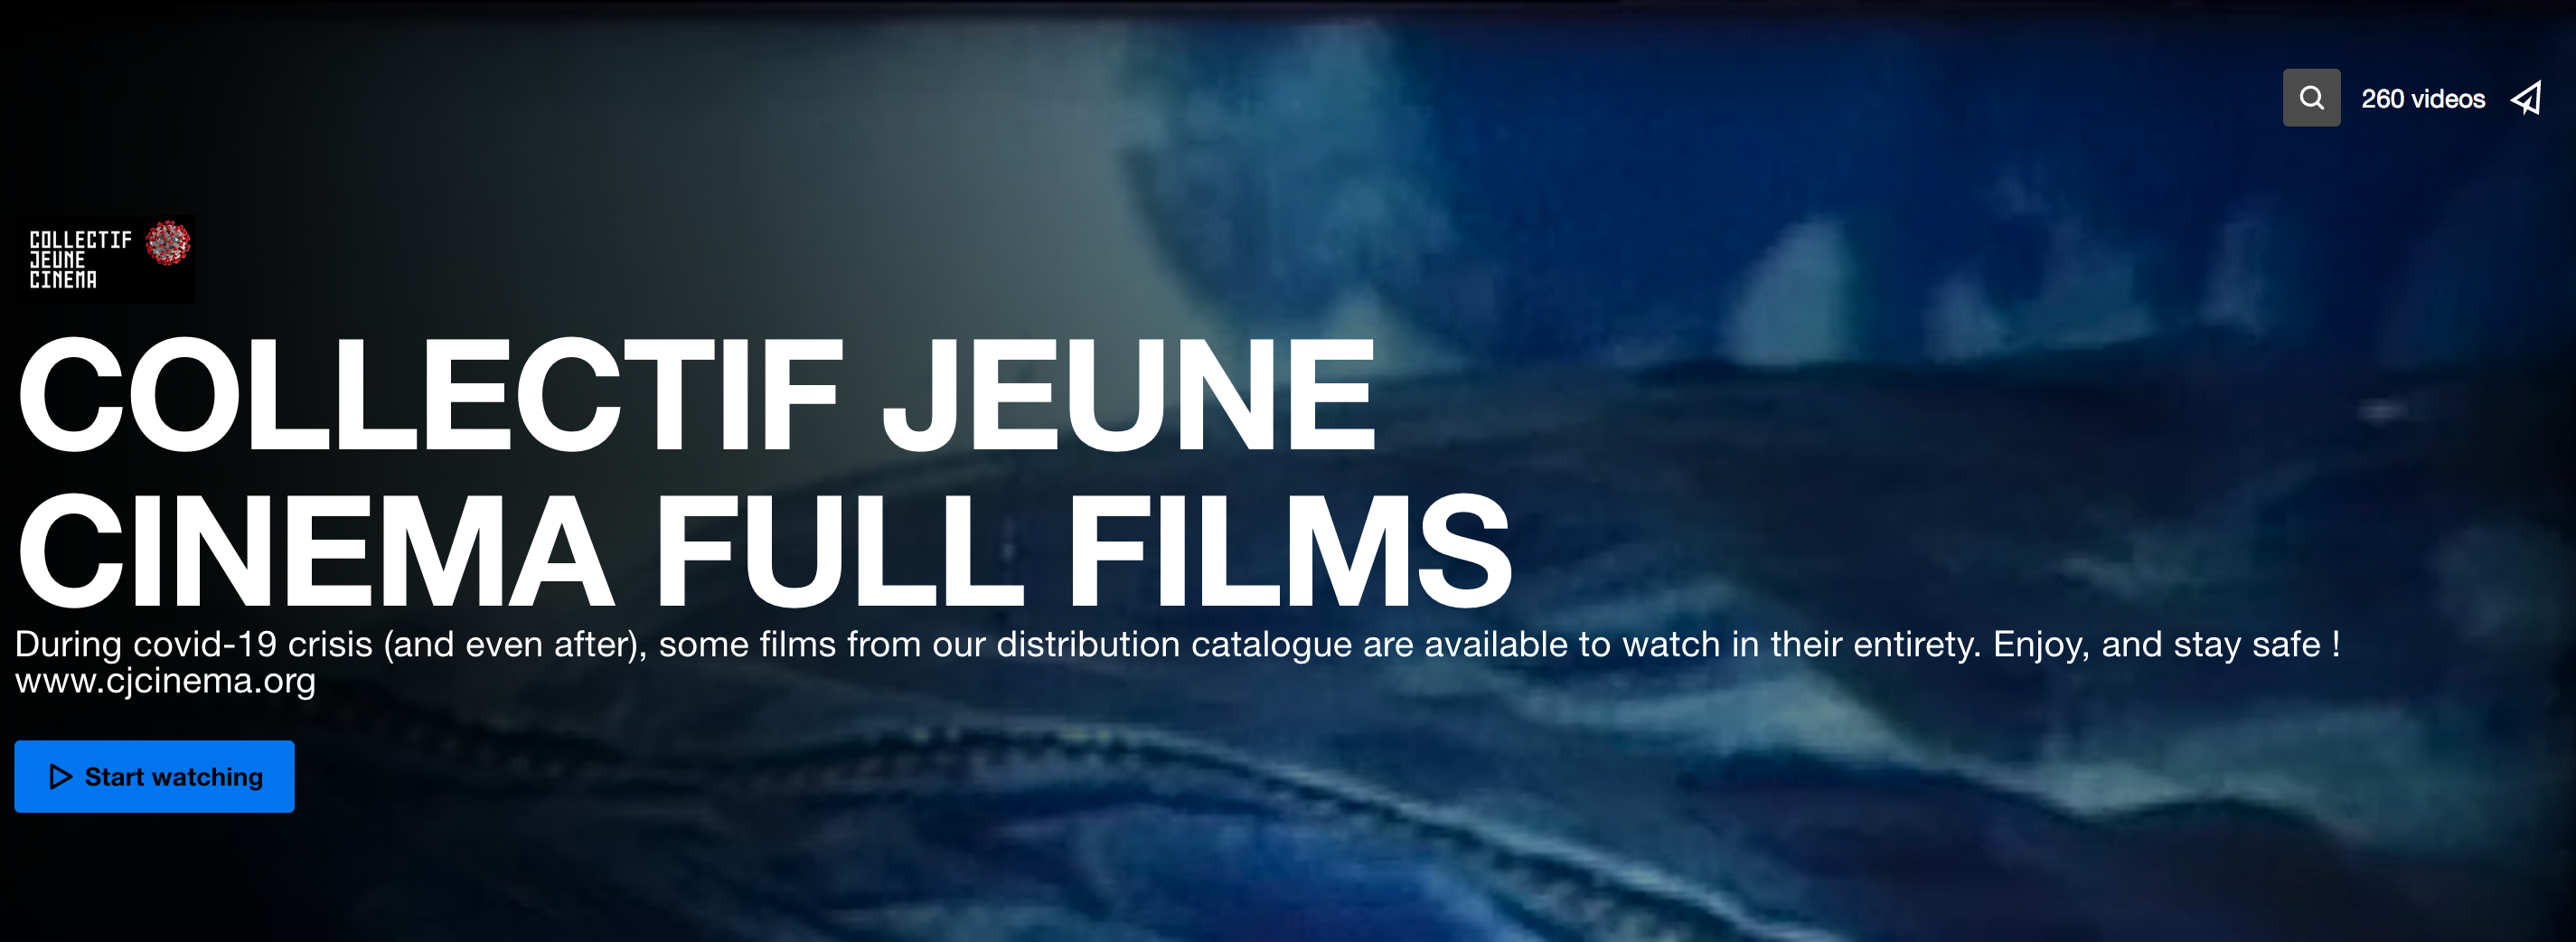 COLLECTIF JEUNE CINEMA FULL FILMS During covid-19 crisis (and even after), some films from our distribution catalogue are available to watch in their entirety. Enjoy, and stay safe ! www.cjcinema.org